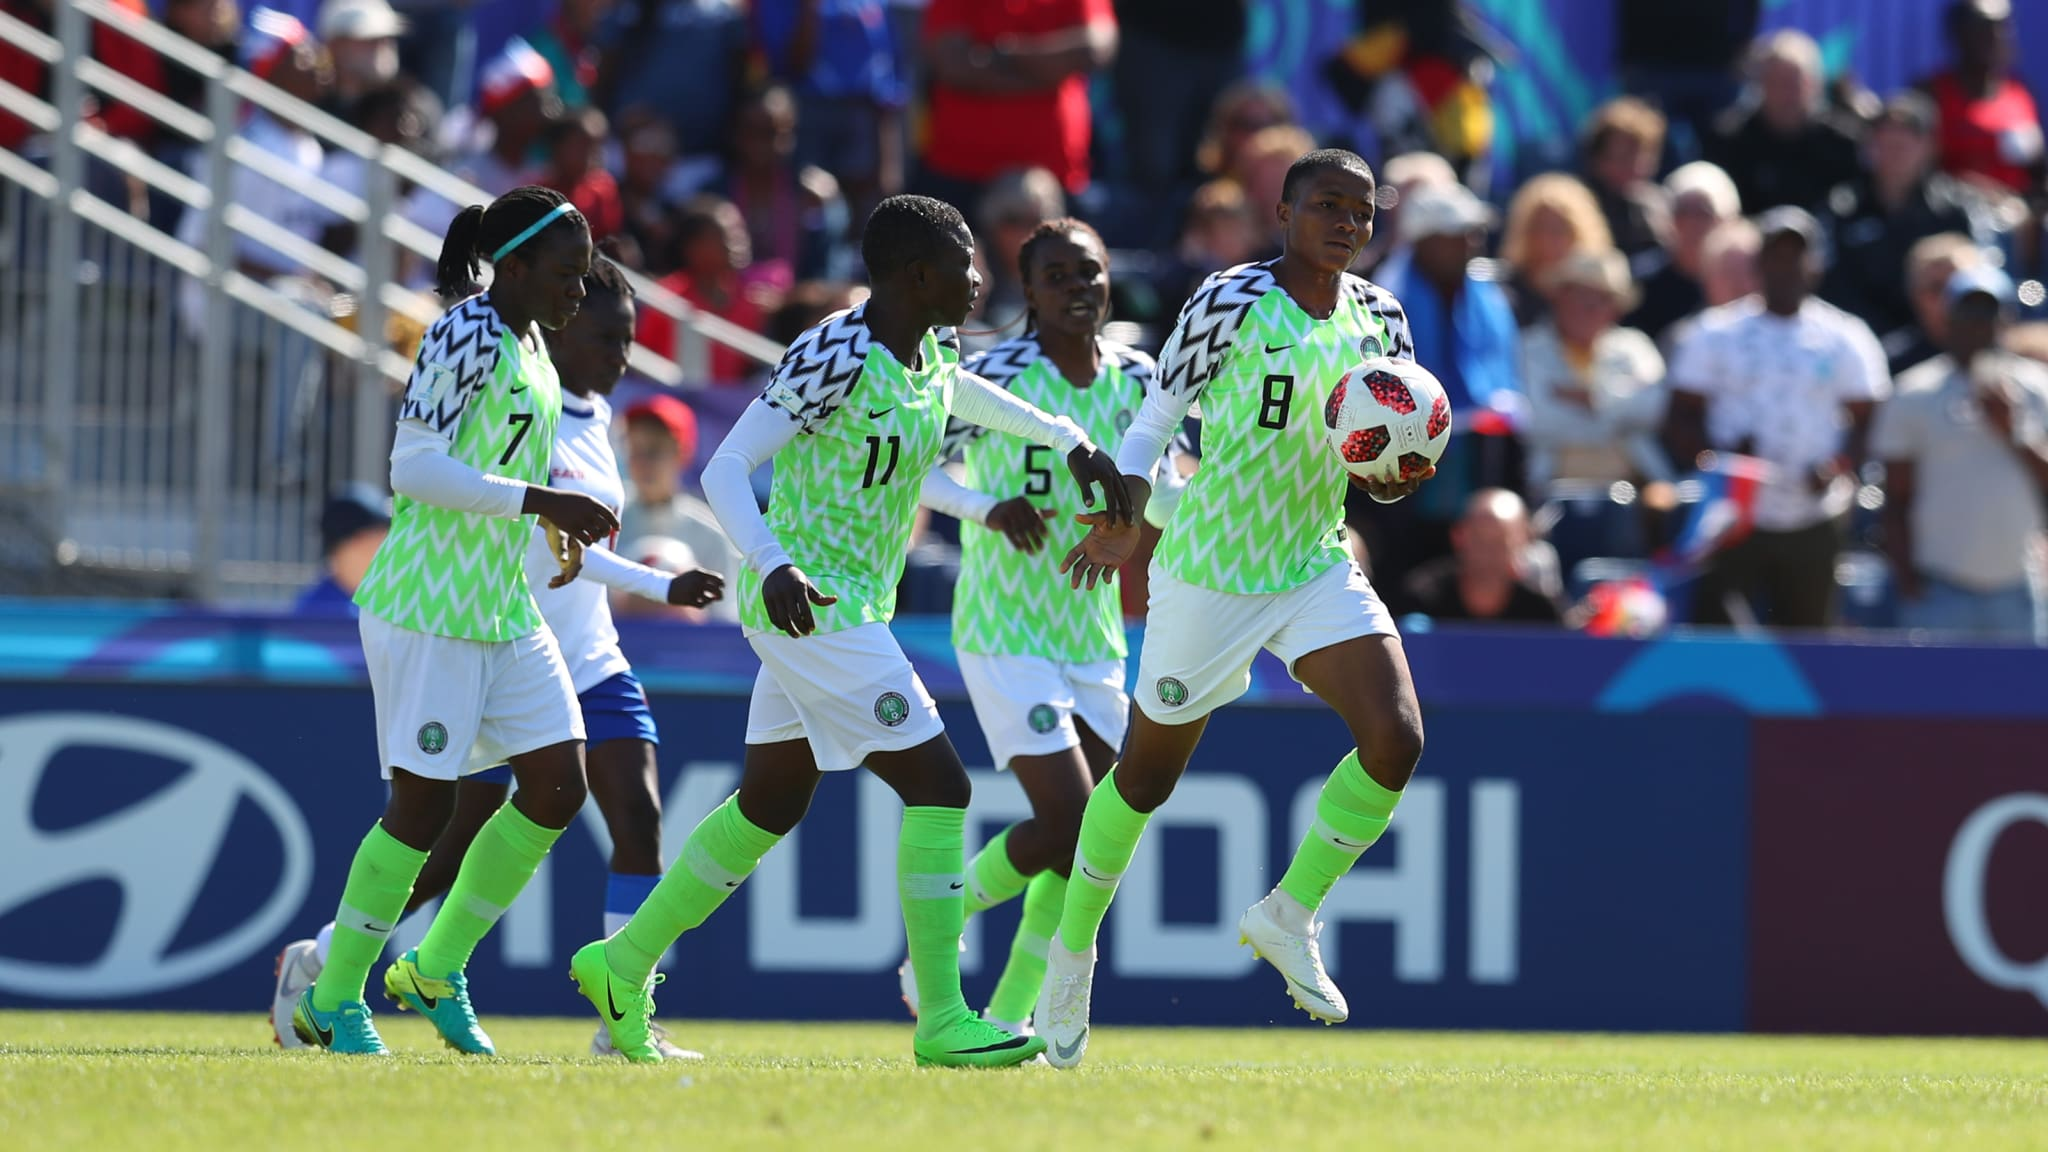 Nigeria Falconets beat Haiti 1-0 in 2nd under-20 FIFA women's world cup game